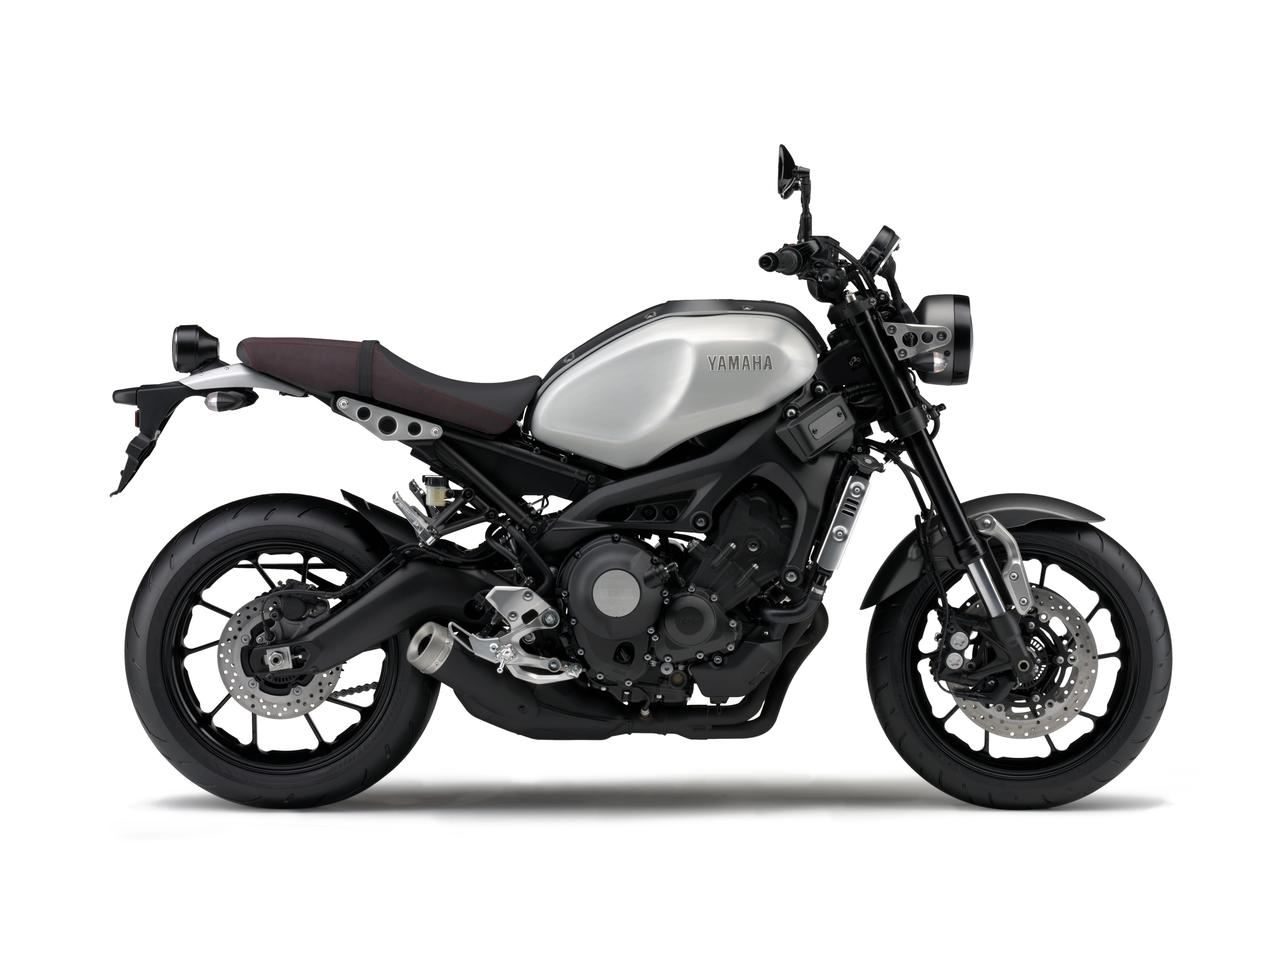 Images : 7番目の画像 - ヤマハ XSR 900 ABS - LAWRENCE - Motorcycle x Cars + α = Your Life.